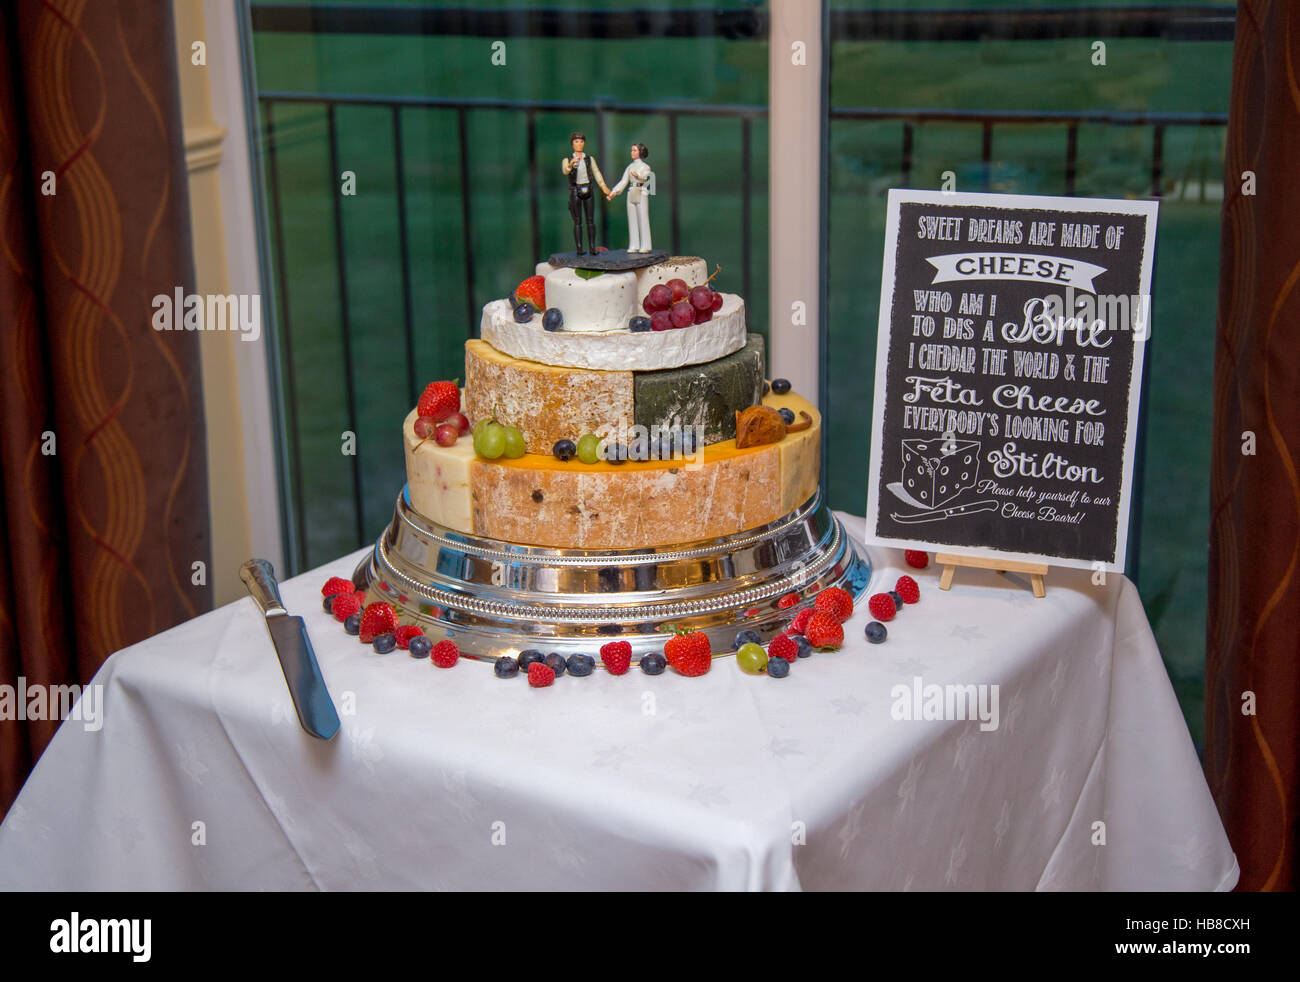 Wedding Cake Made Of Cheese Decorated With Fruit And Star Wars